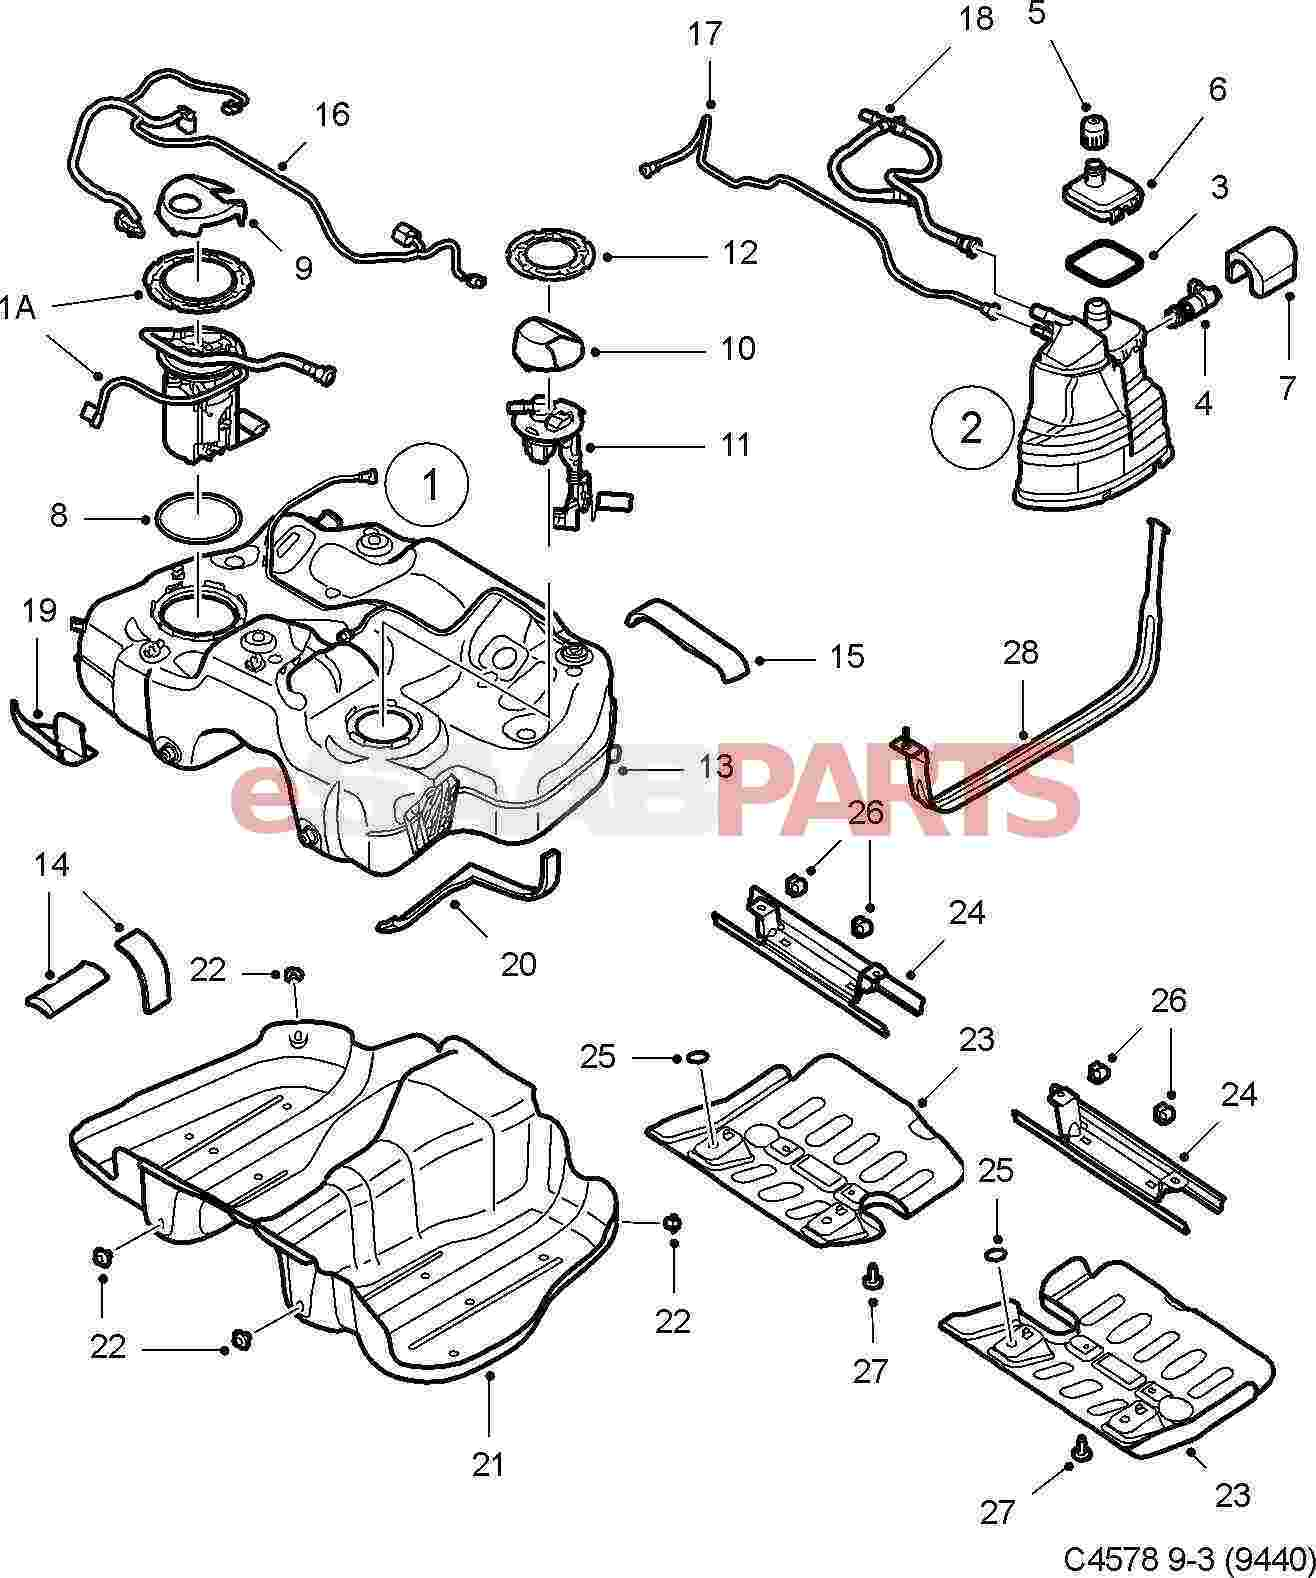 Fabulous Saab Fuel Rail Diagram Saab Circuit Diagrams Standard Electrical Wiring Digital Resources Jebrpcompassionincorg